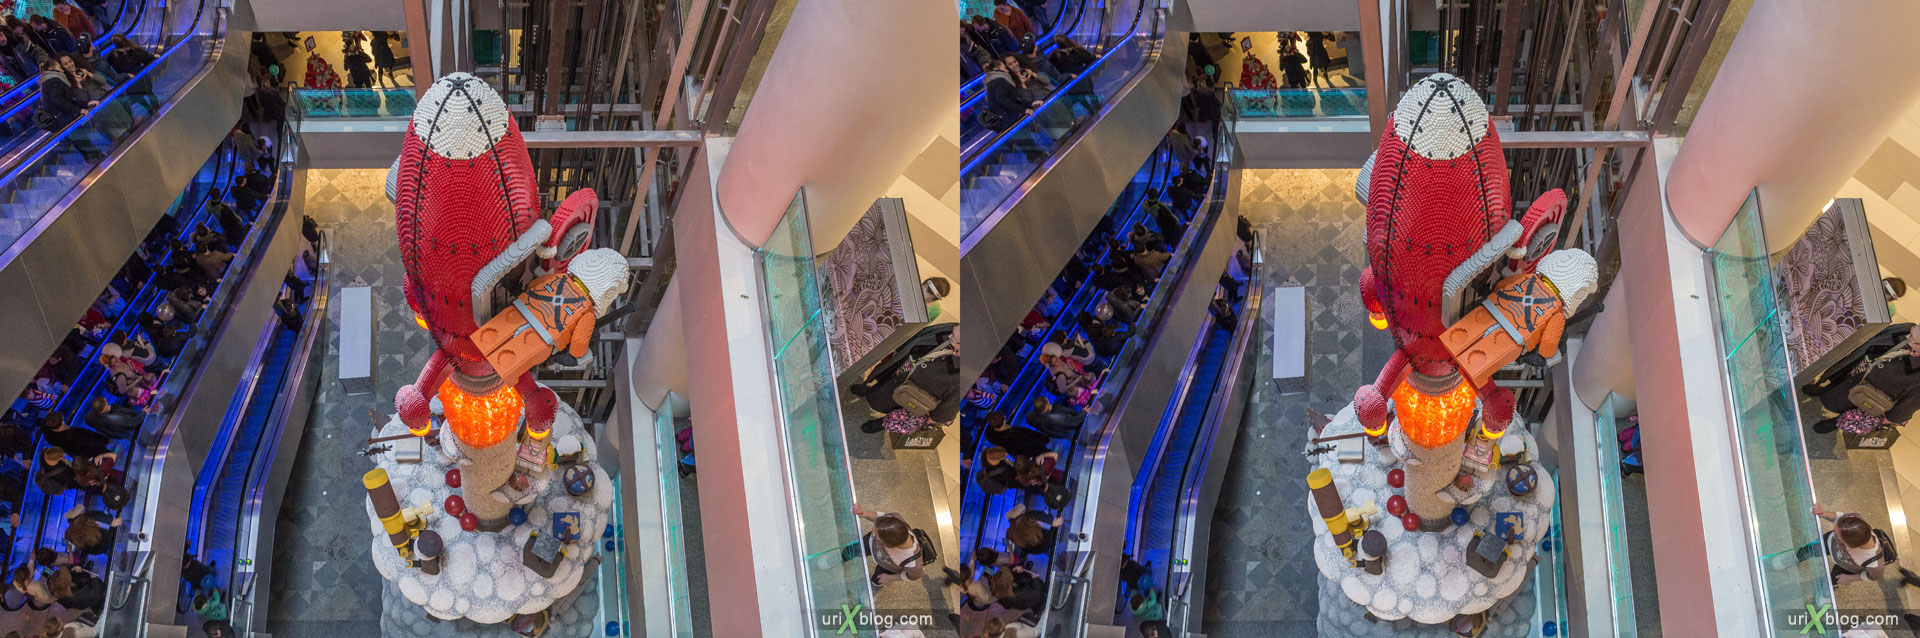 LEGO, Hamleys-World, Central Childrens World, Shop, Store, Lubyanskaya square, Moscow, Russia, 3D, stereo pair, cross-eyed, crossview, cross view stereo pair, stereoscopic, 2015